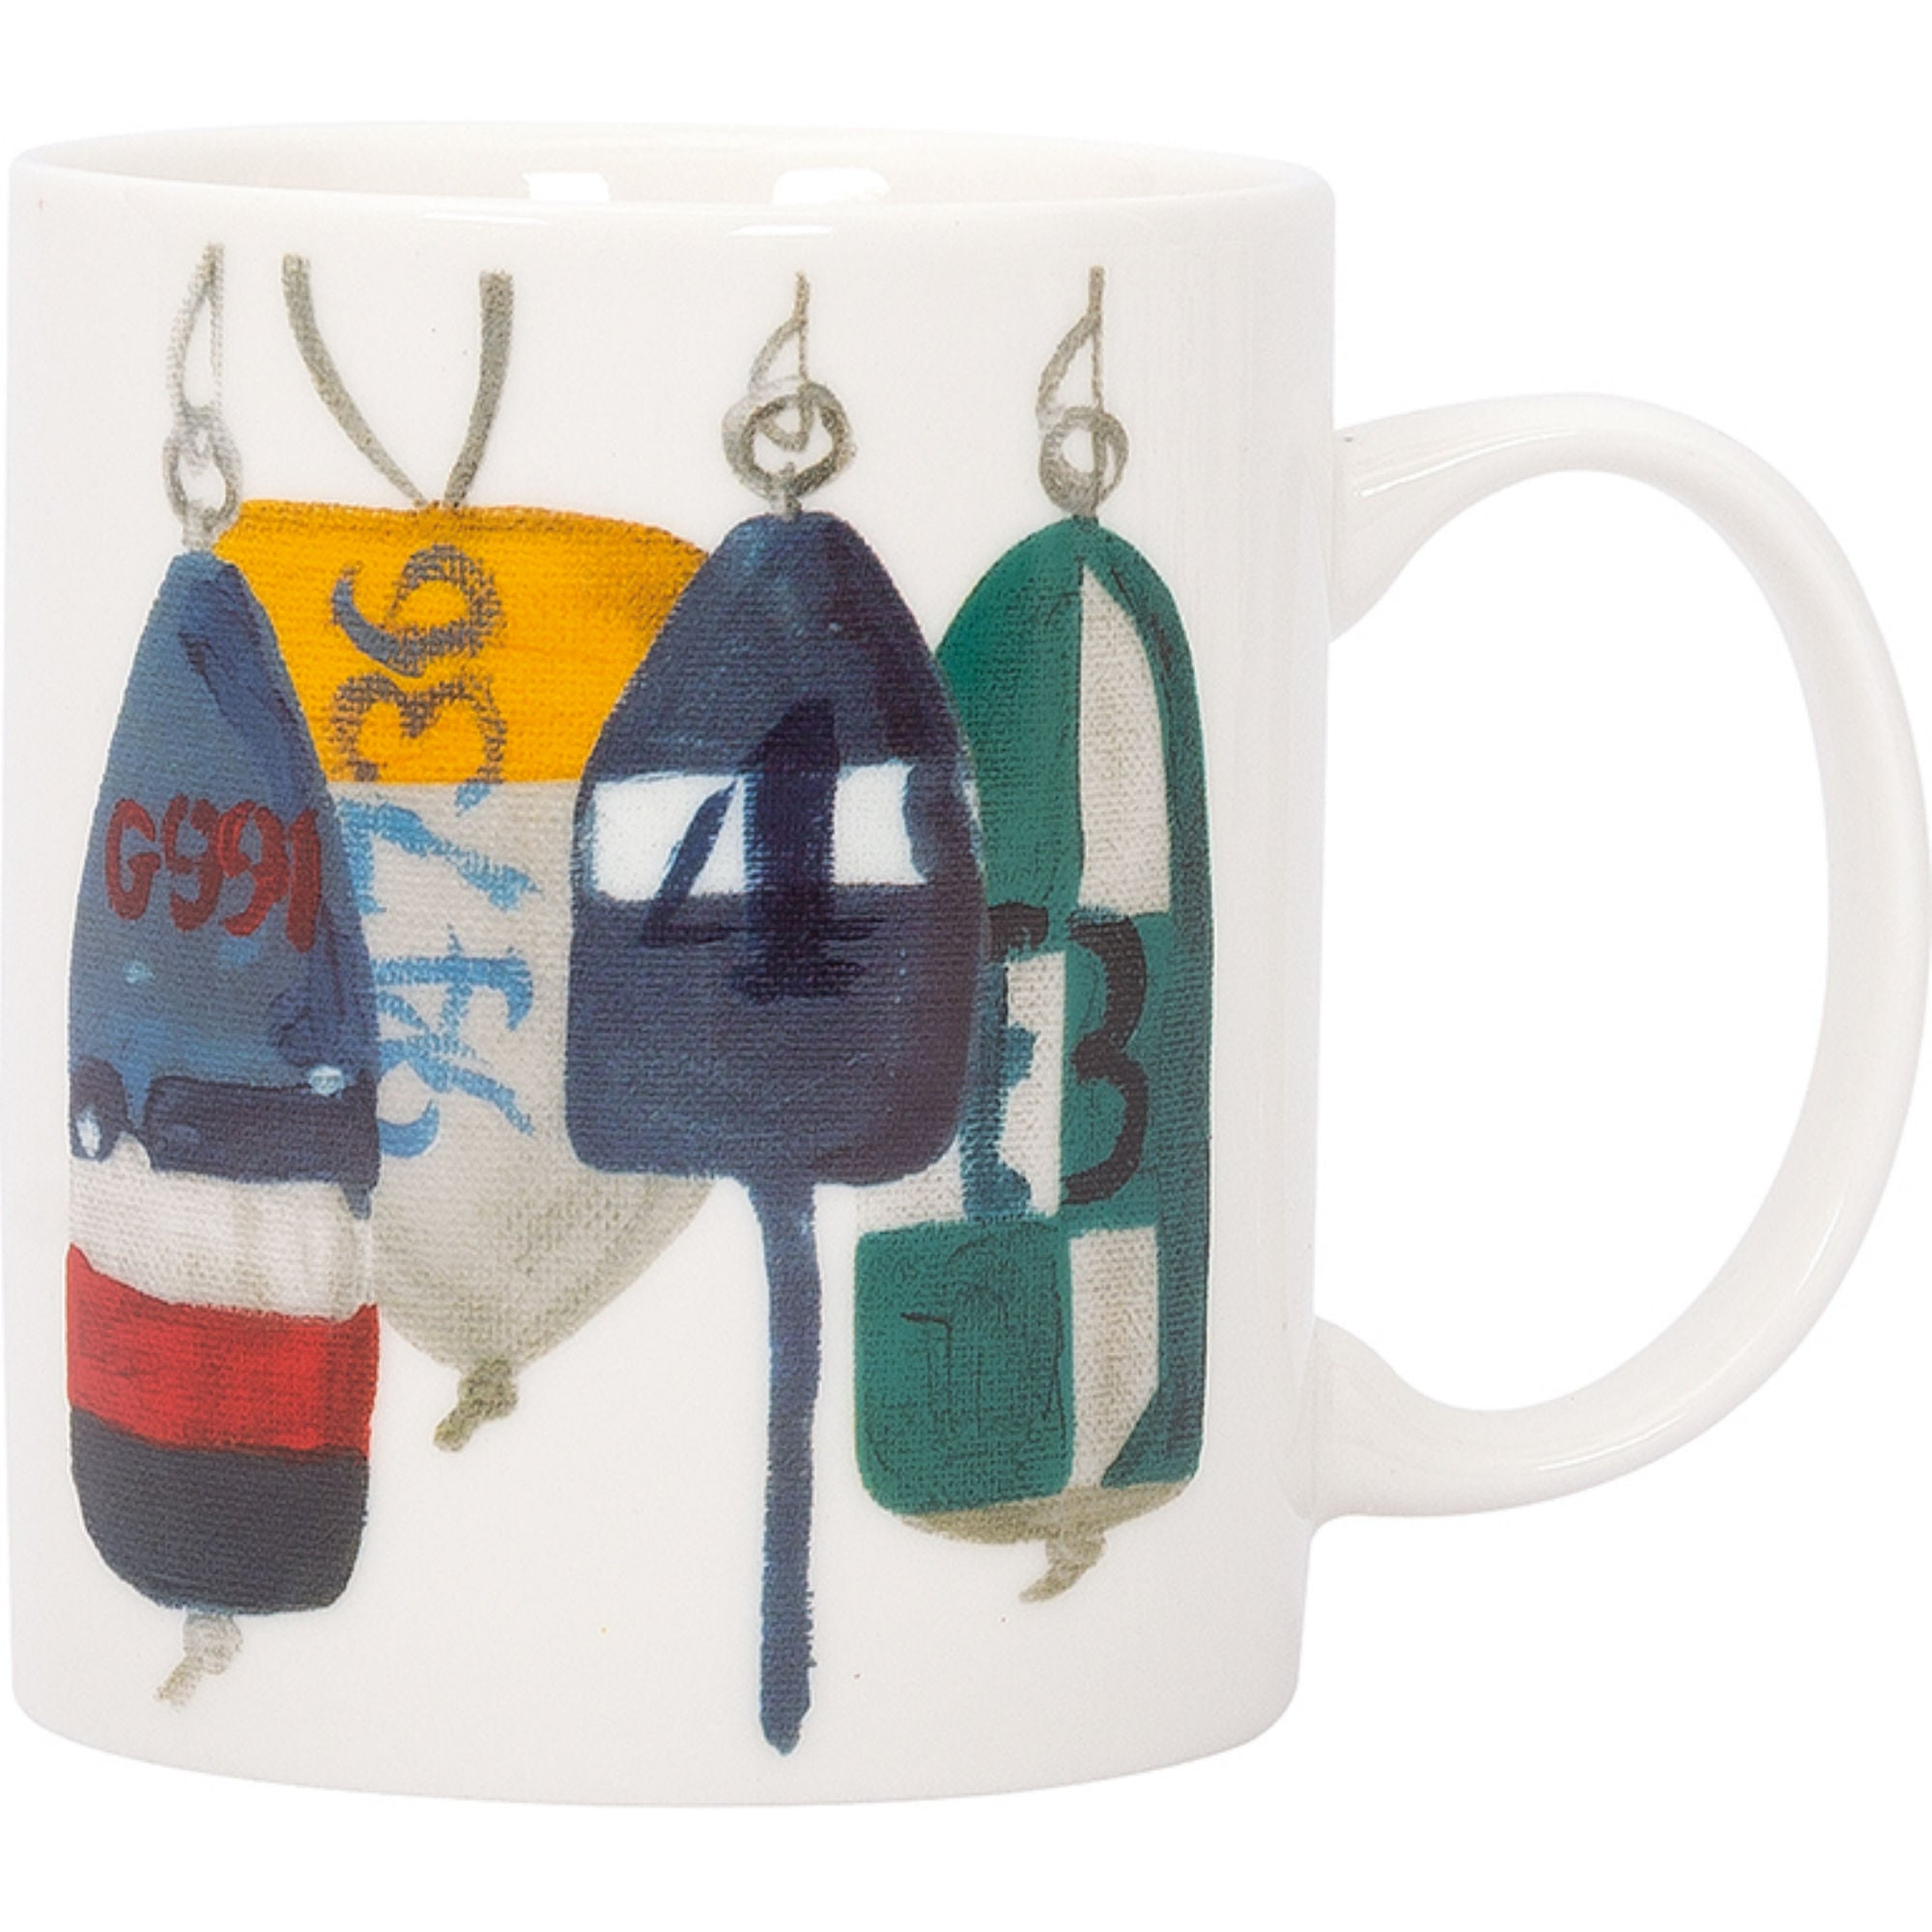 Batela Giftware-Mugs-Buoys Mugs (Set of 4)